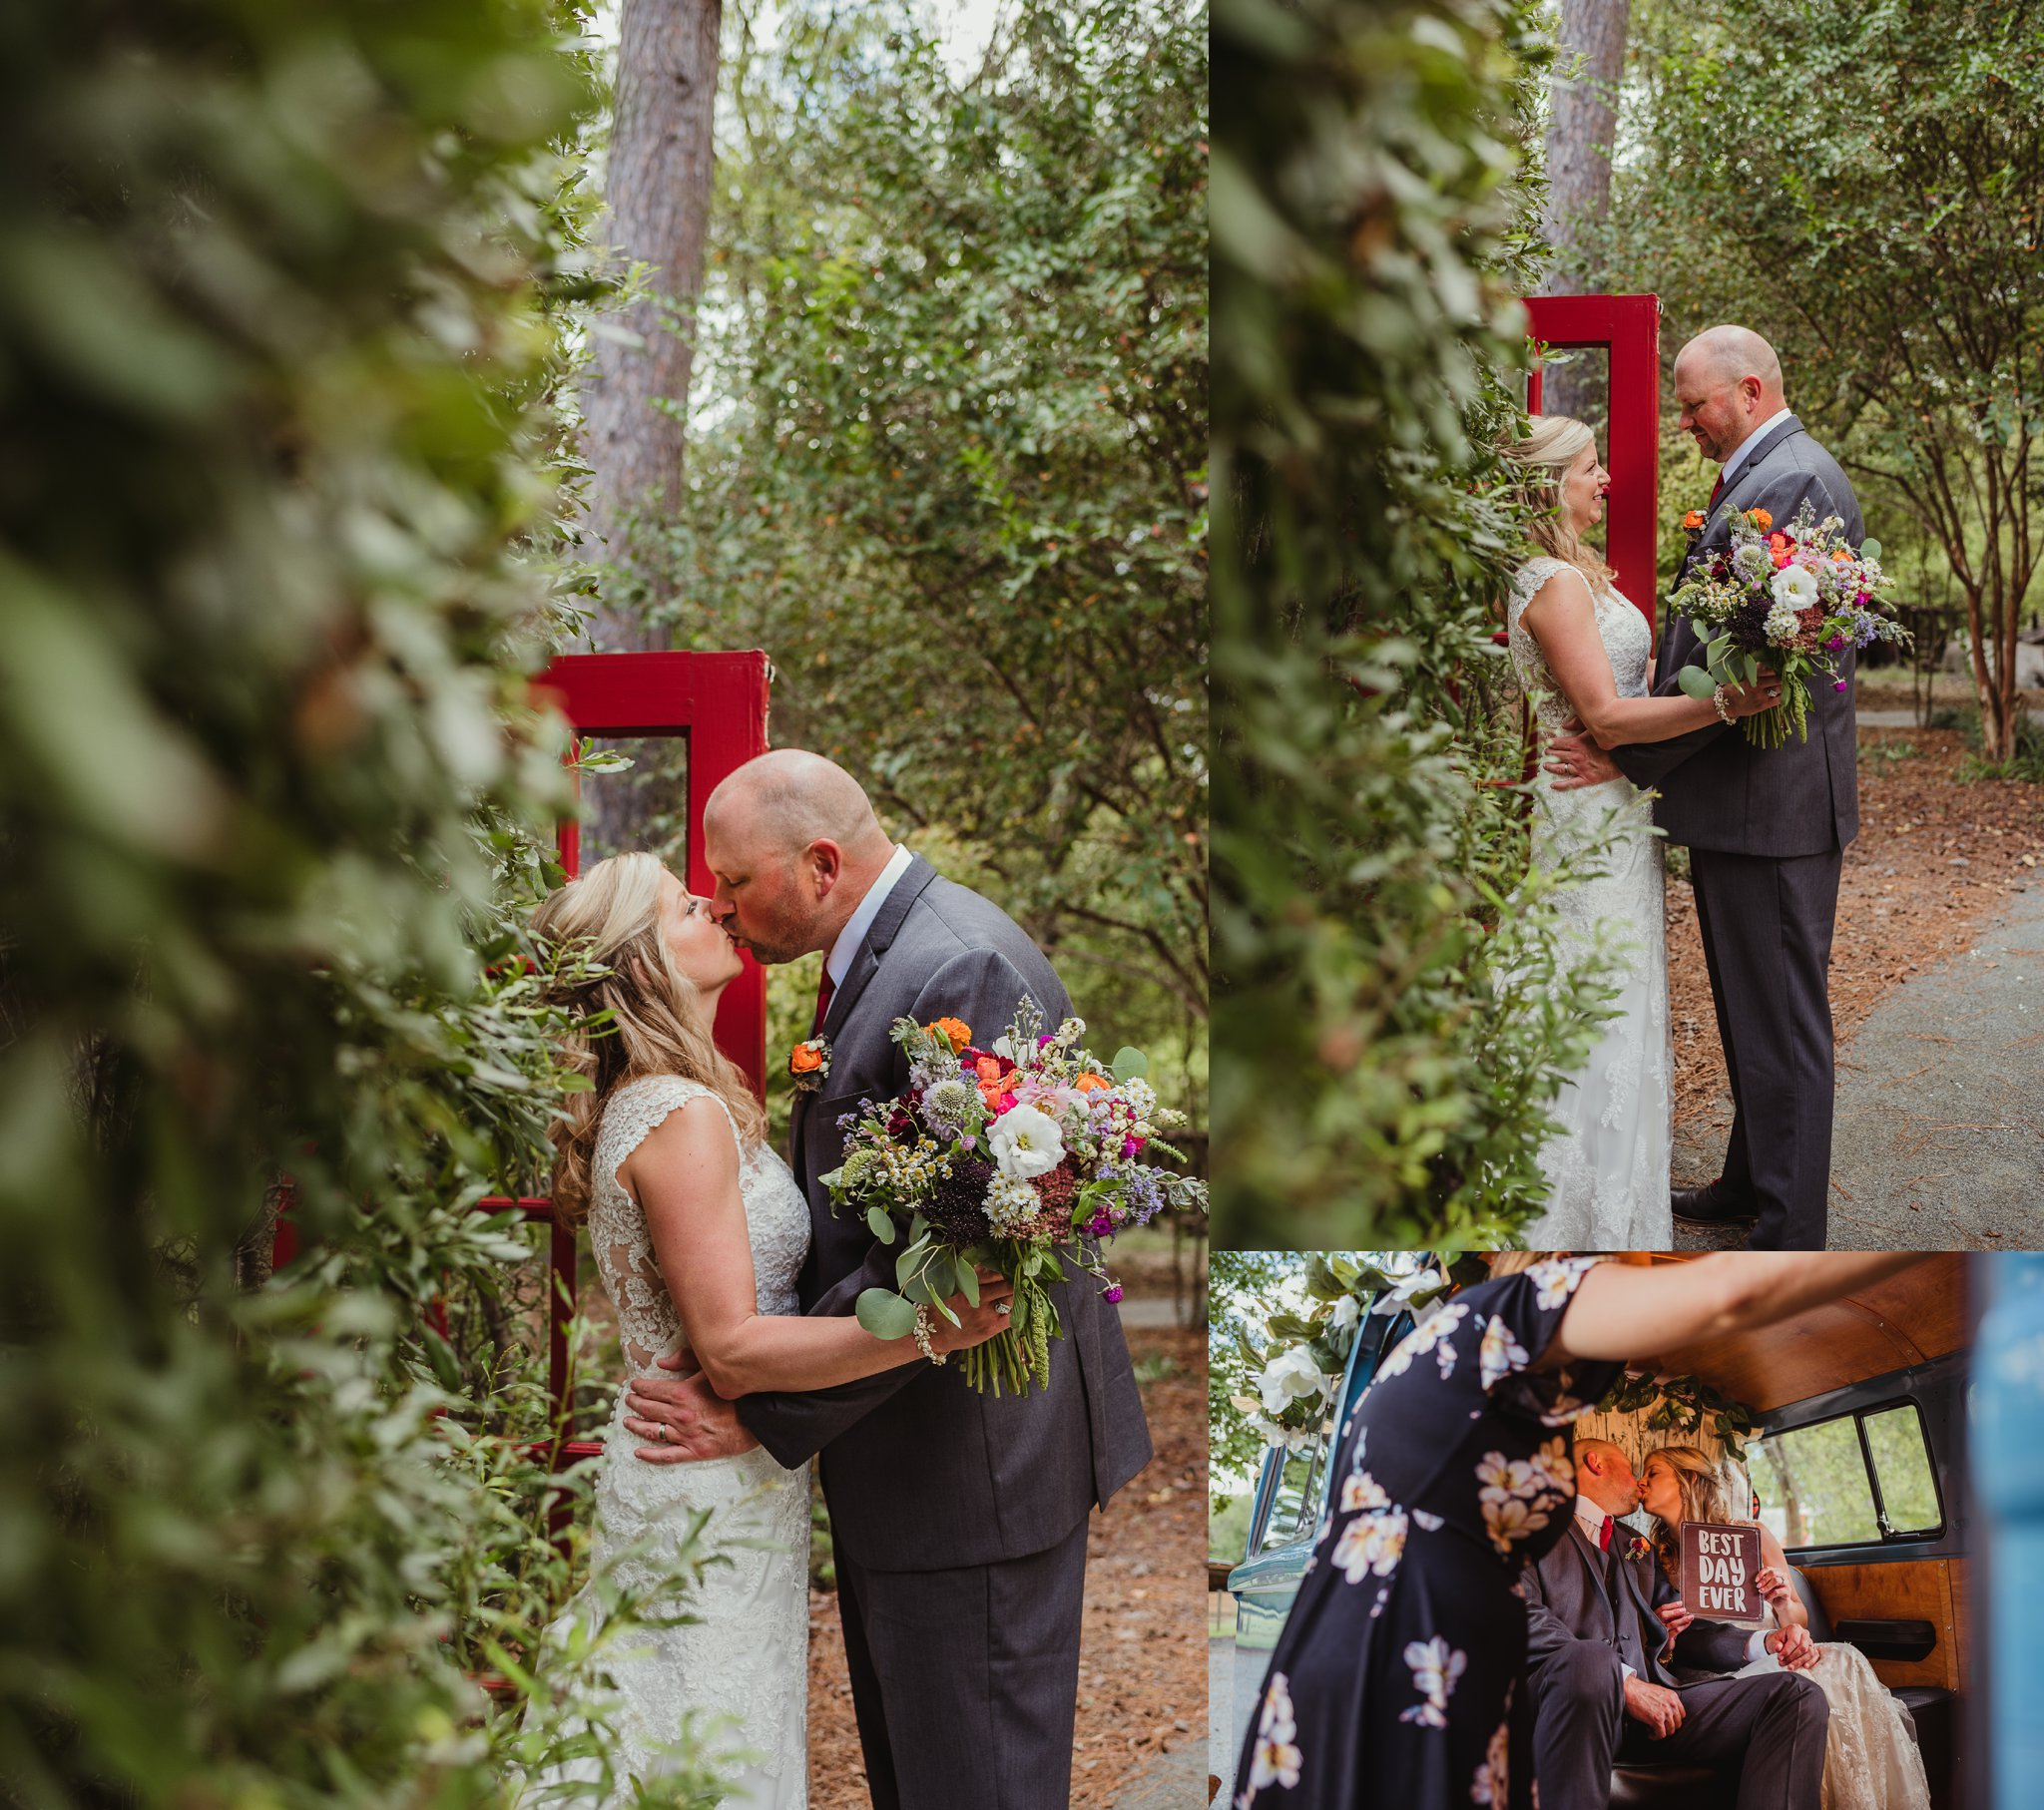 The bride and groom kiss during their portraits with Rose Trail Images after their wedding ceremony at Cedar Grove Acres near North Carolina.